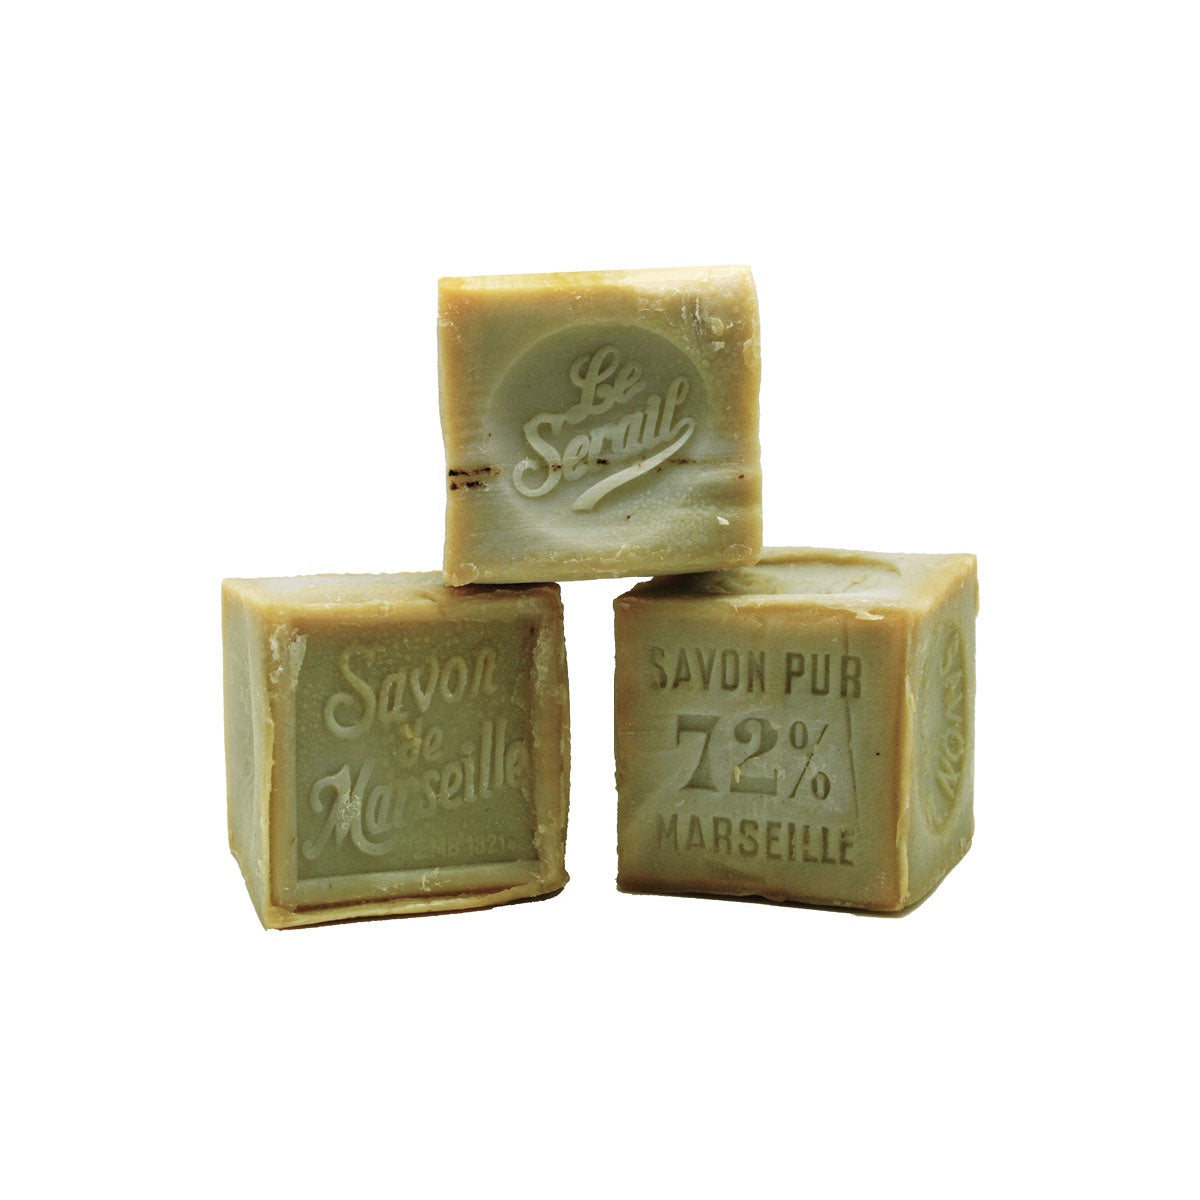 300g Cube Soap by Le Serail - Olive